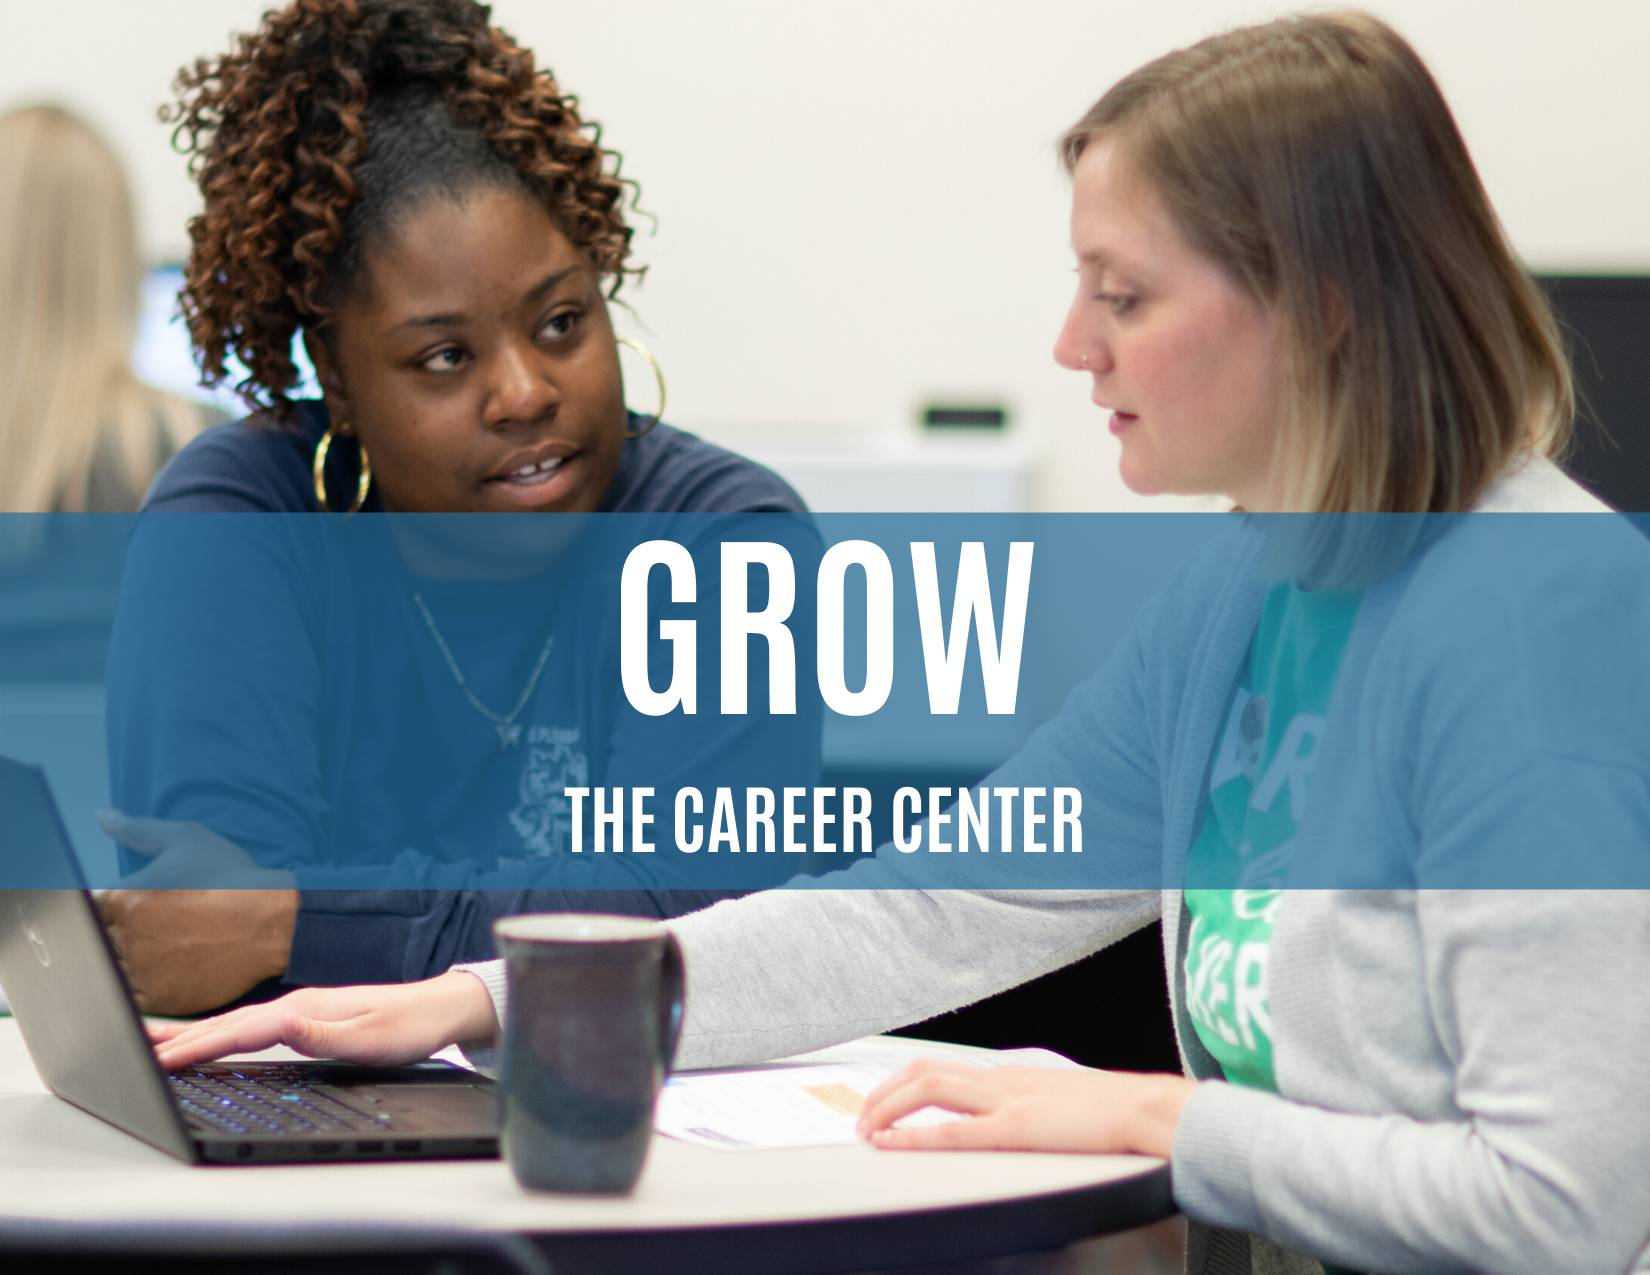 Grow with the career center